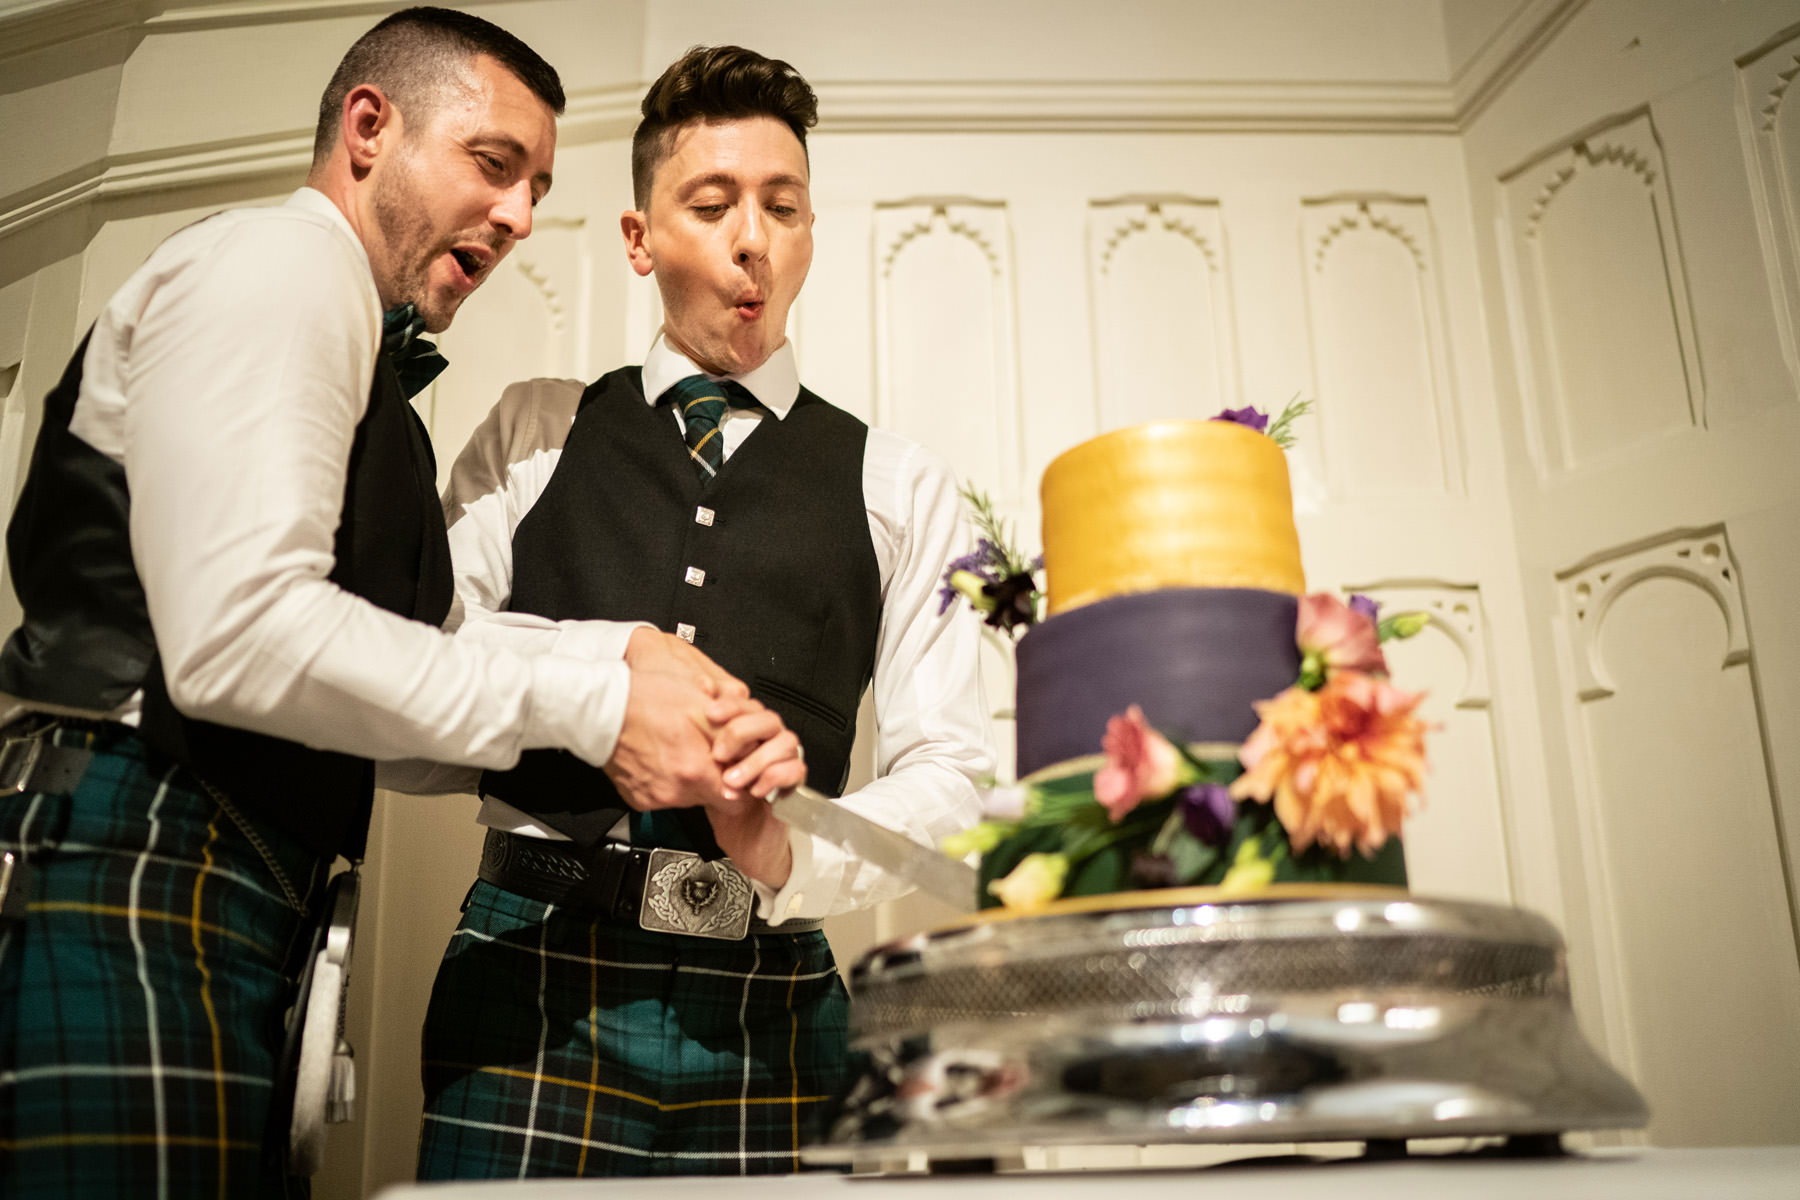 Two grooms cut their wedding cake